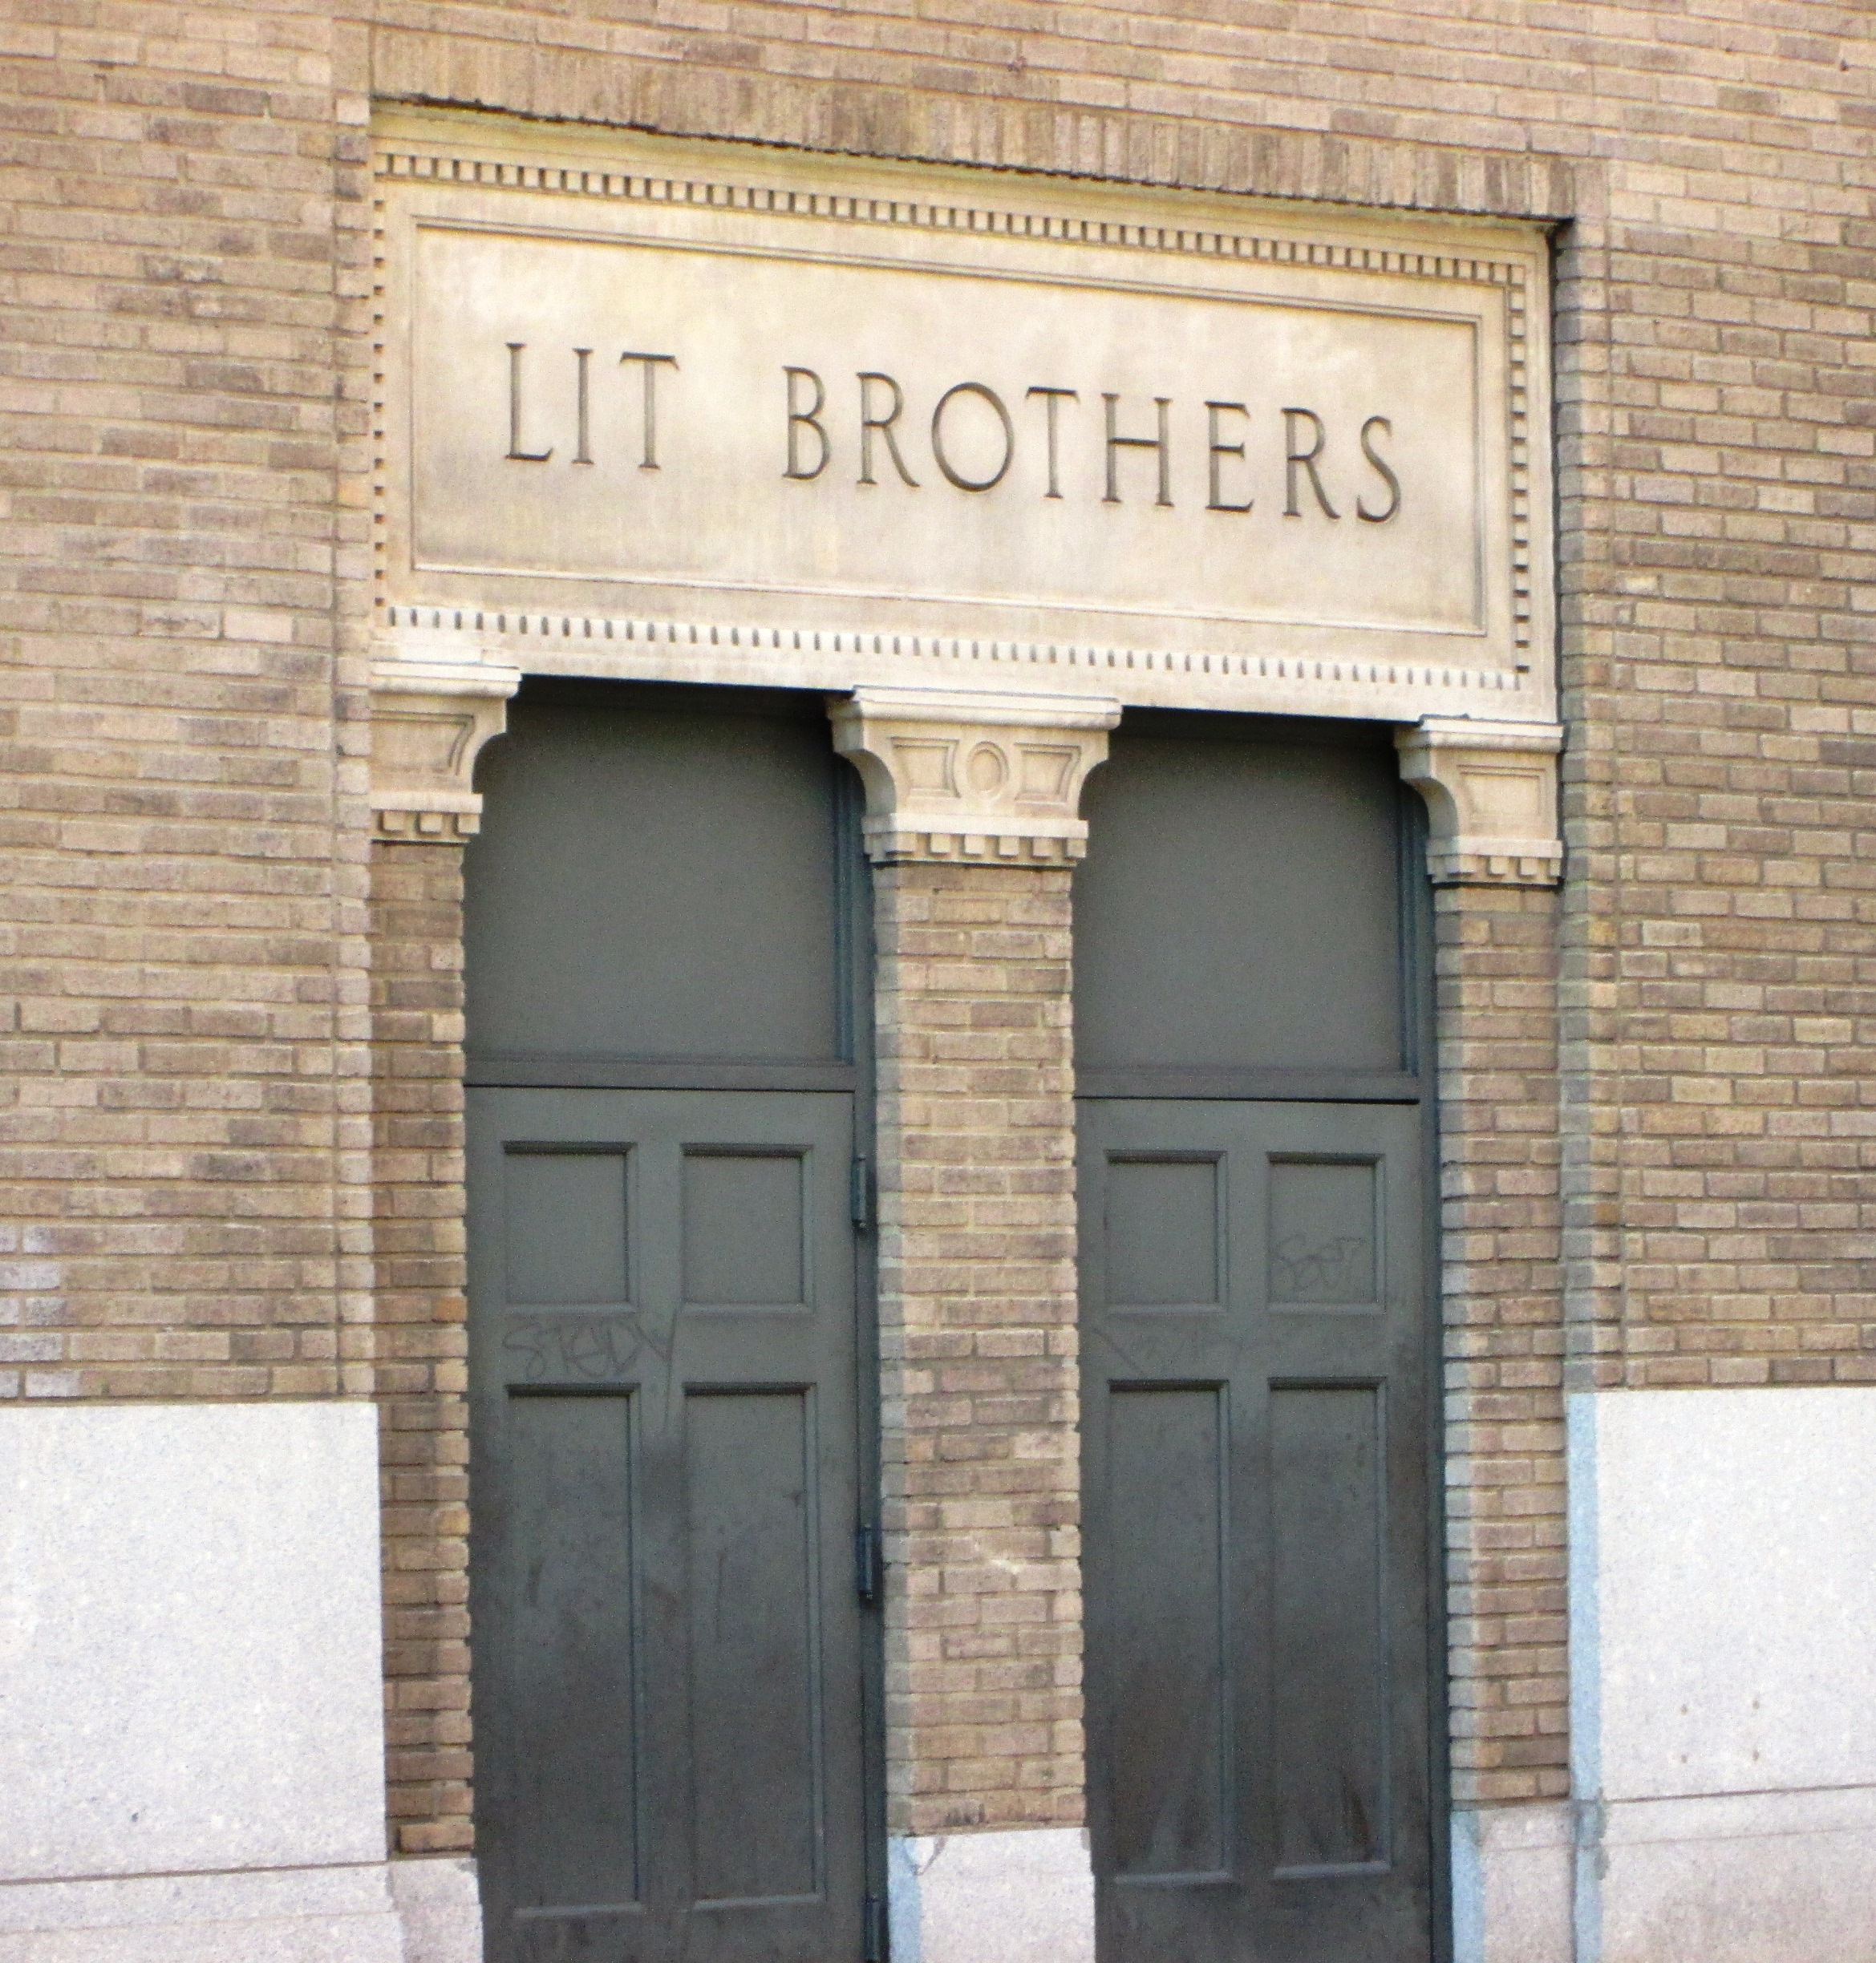 lit-brothers-department-store-philadelphia-pa